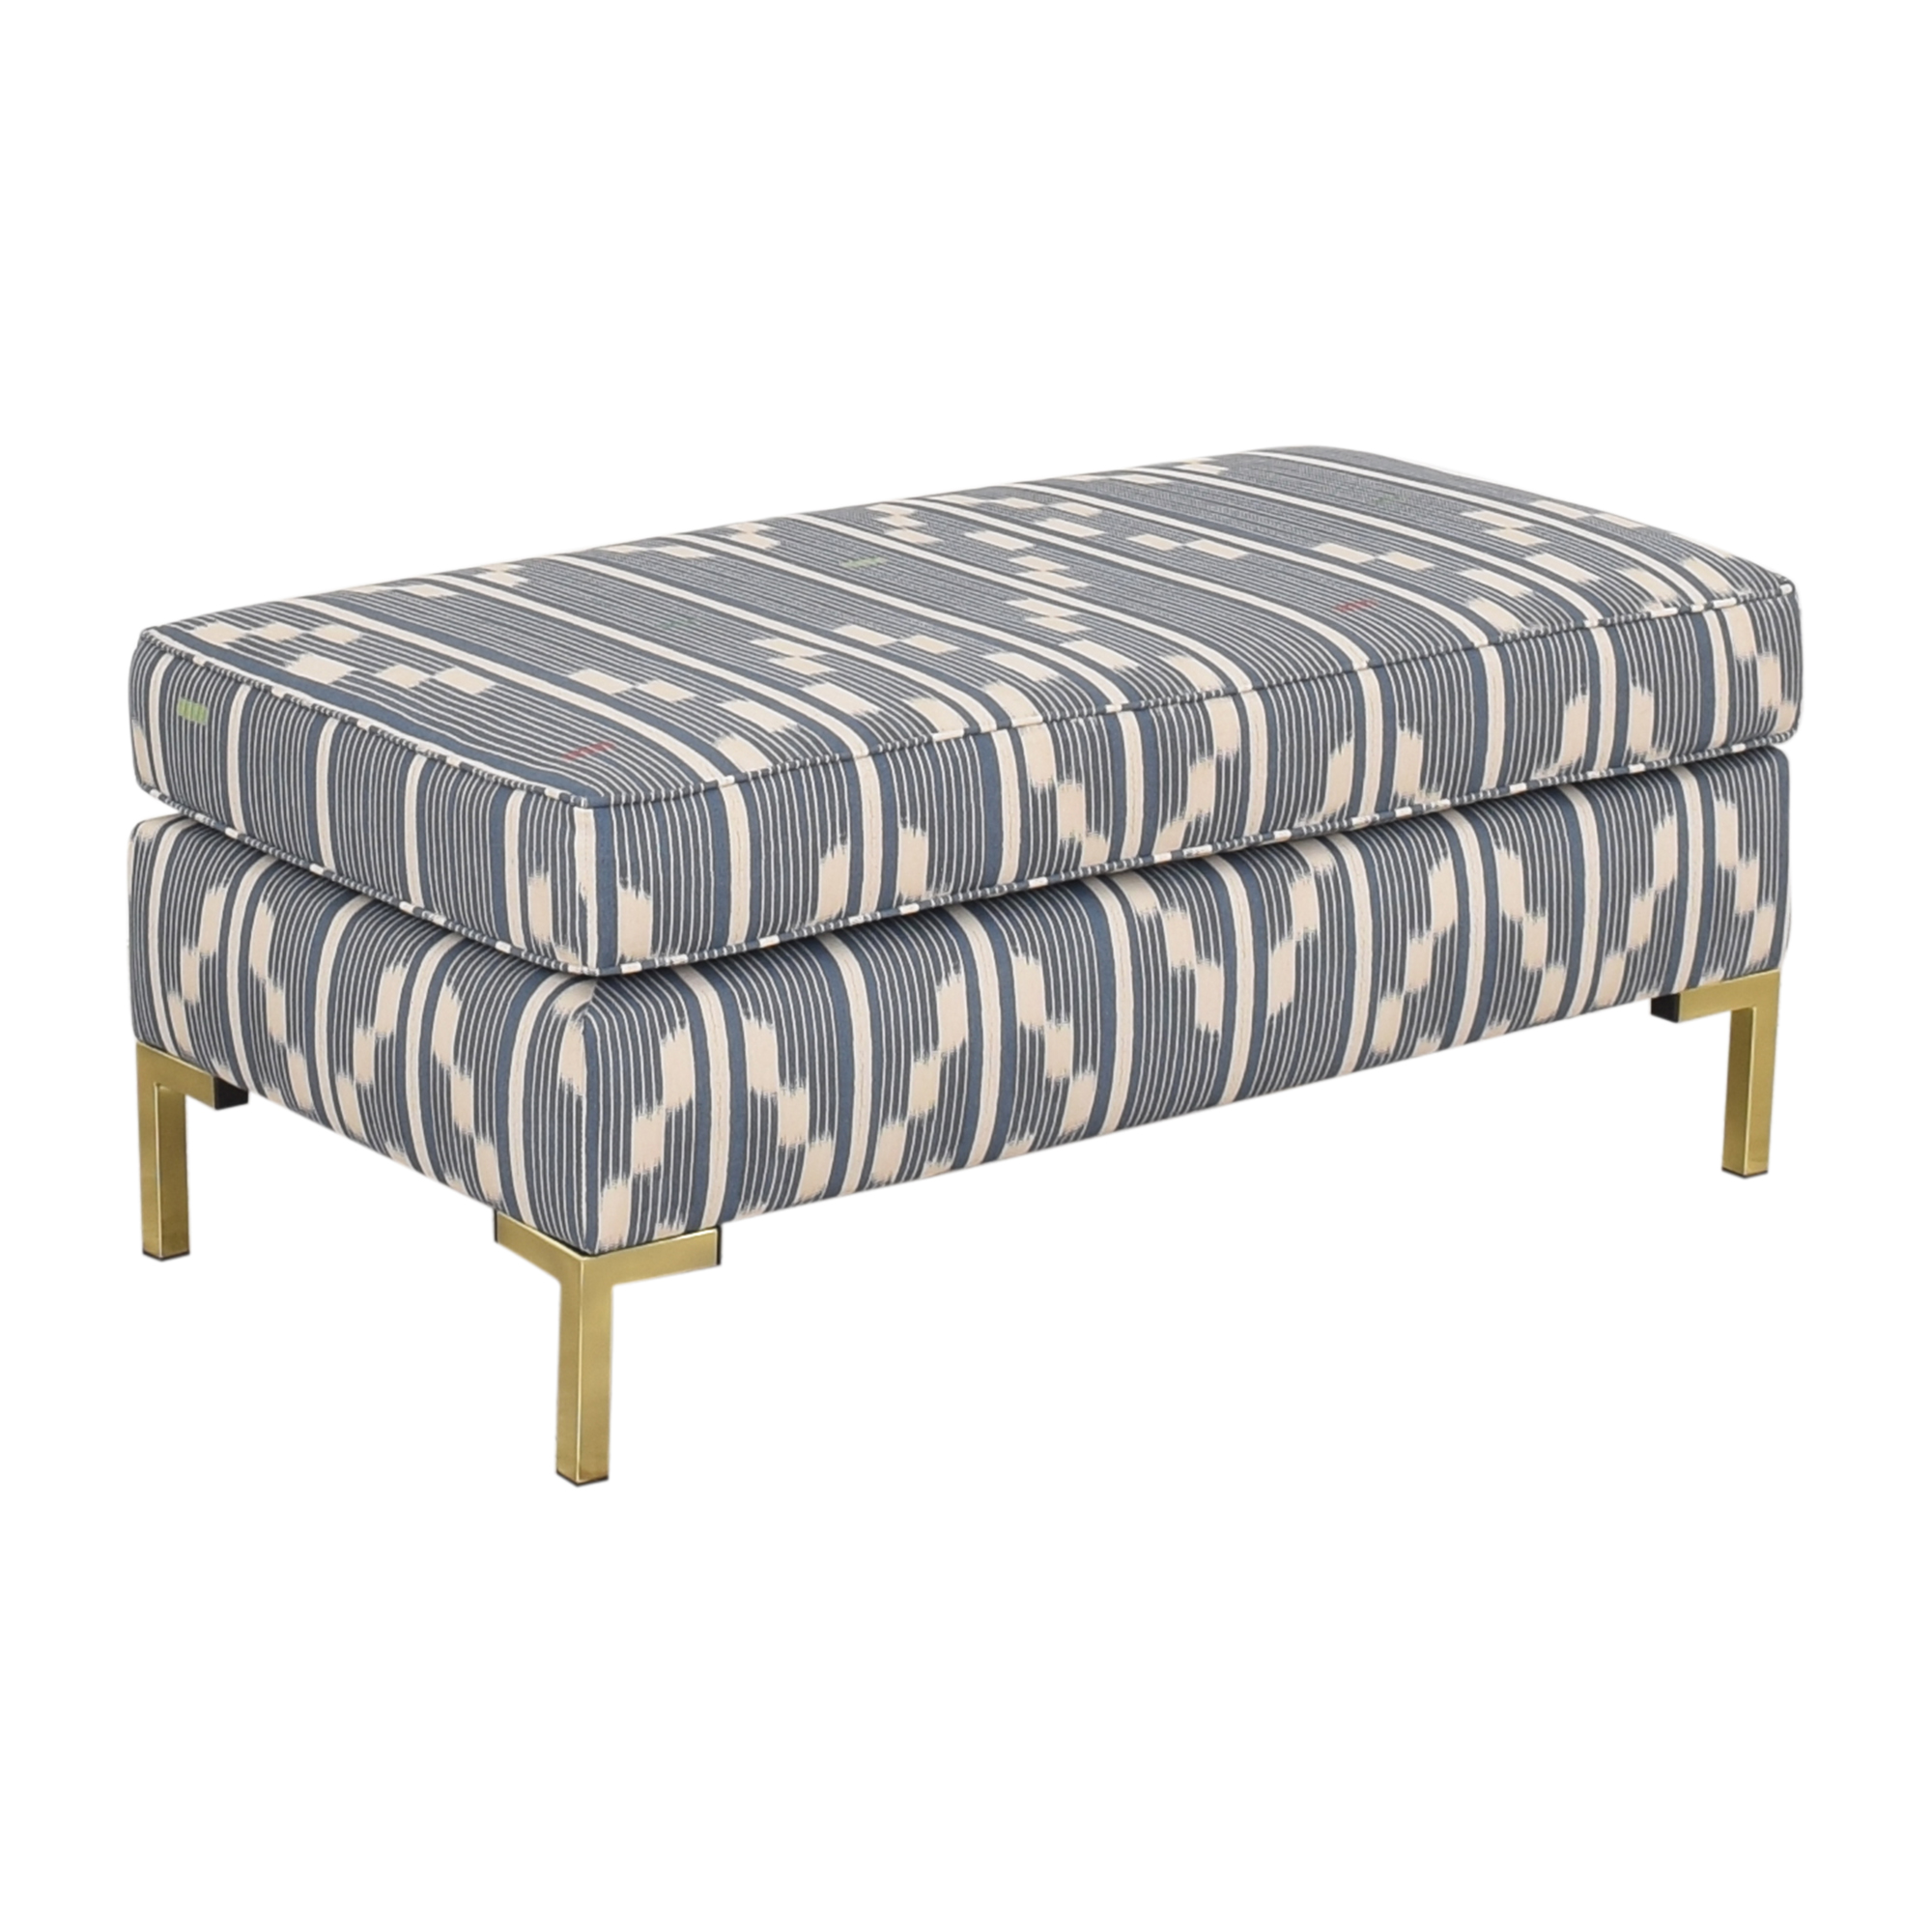 The Inside The Inside Modern Bench in Linea Ikat discount